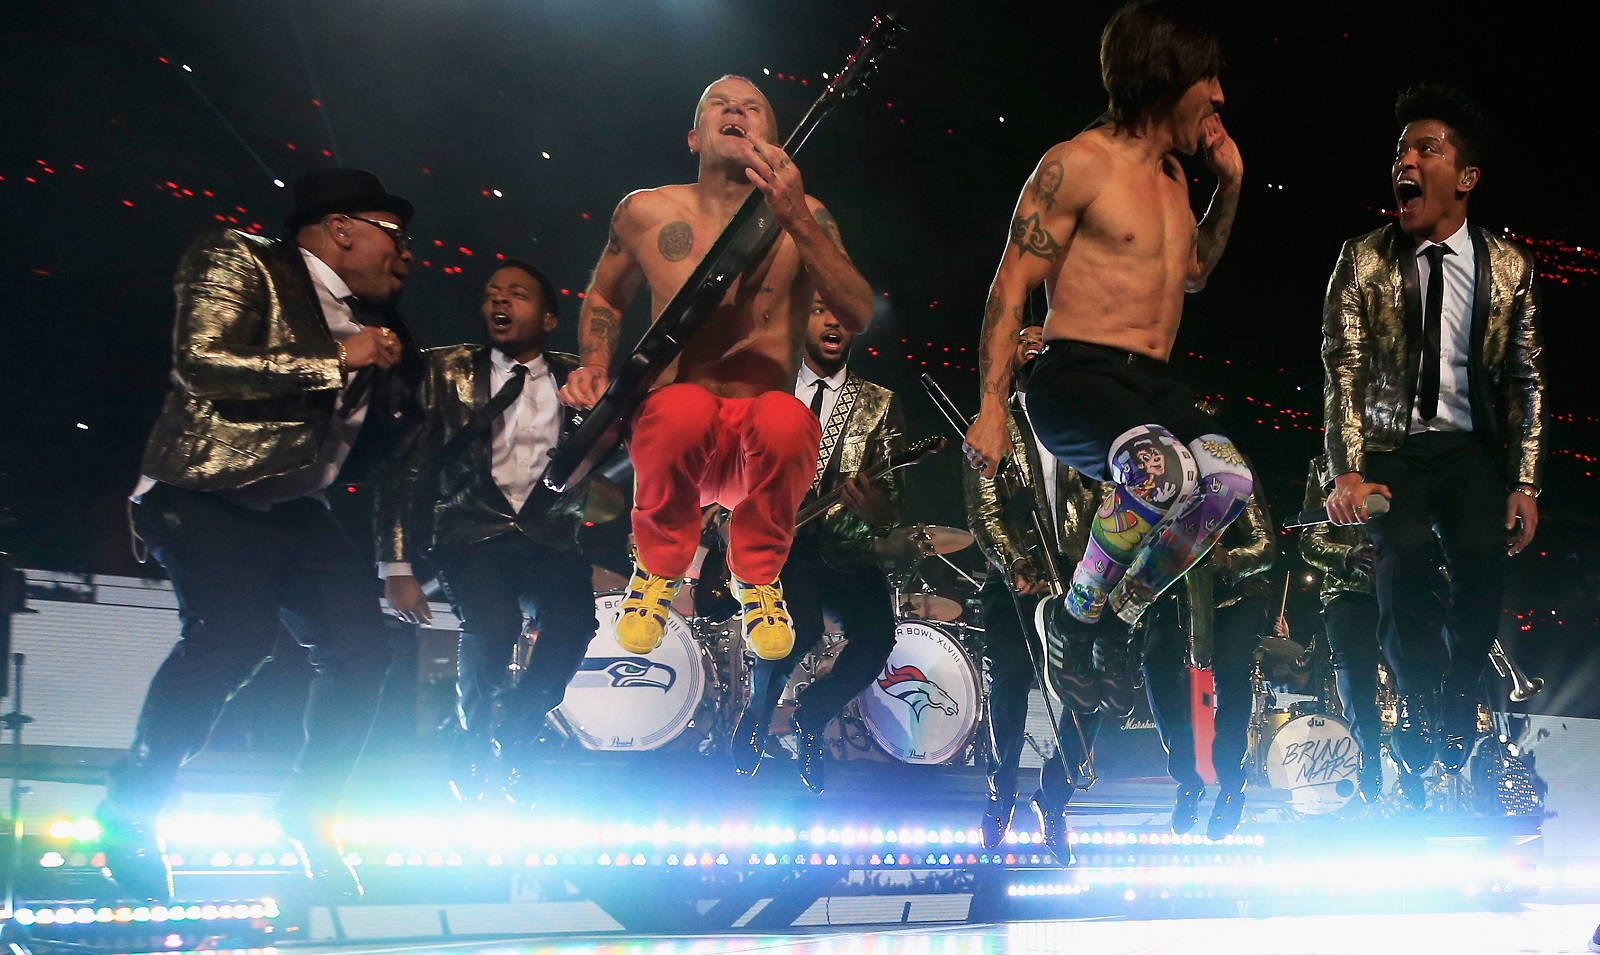 Flea (left) and Anthony Kiedis of the Red Hot Chili Peppers, with Bruno Mars at the Super Bowl XLVIII Halftime Show in 2014. (Getty Images)